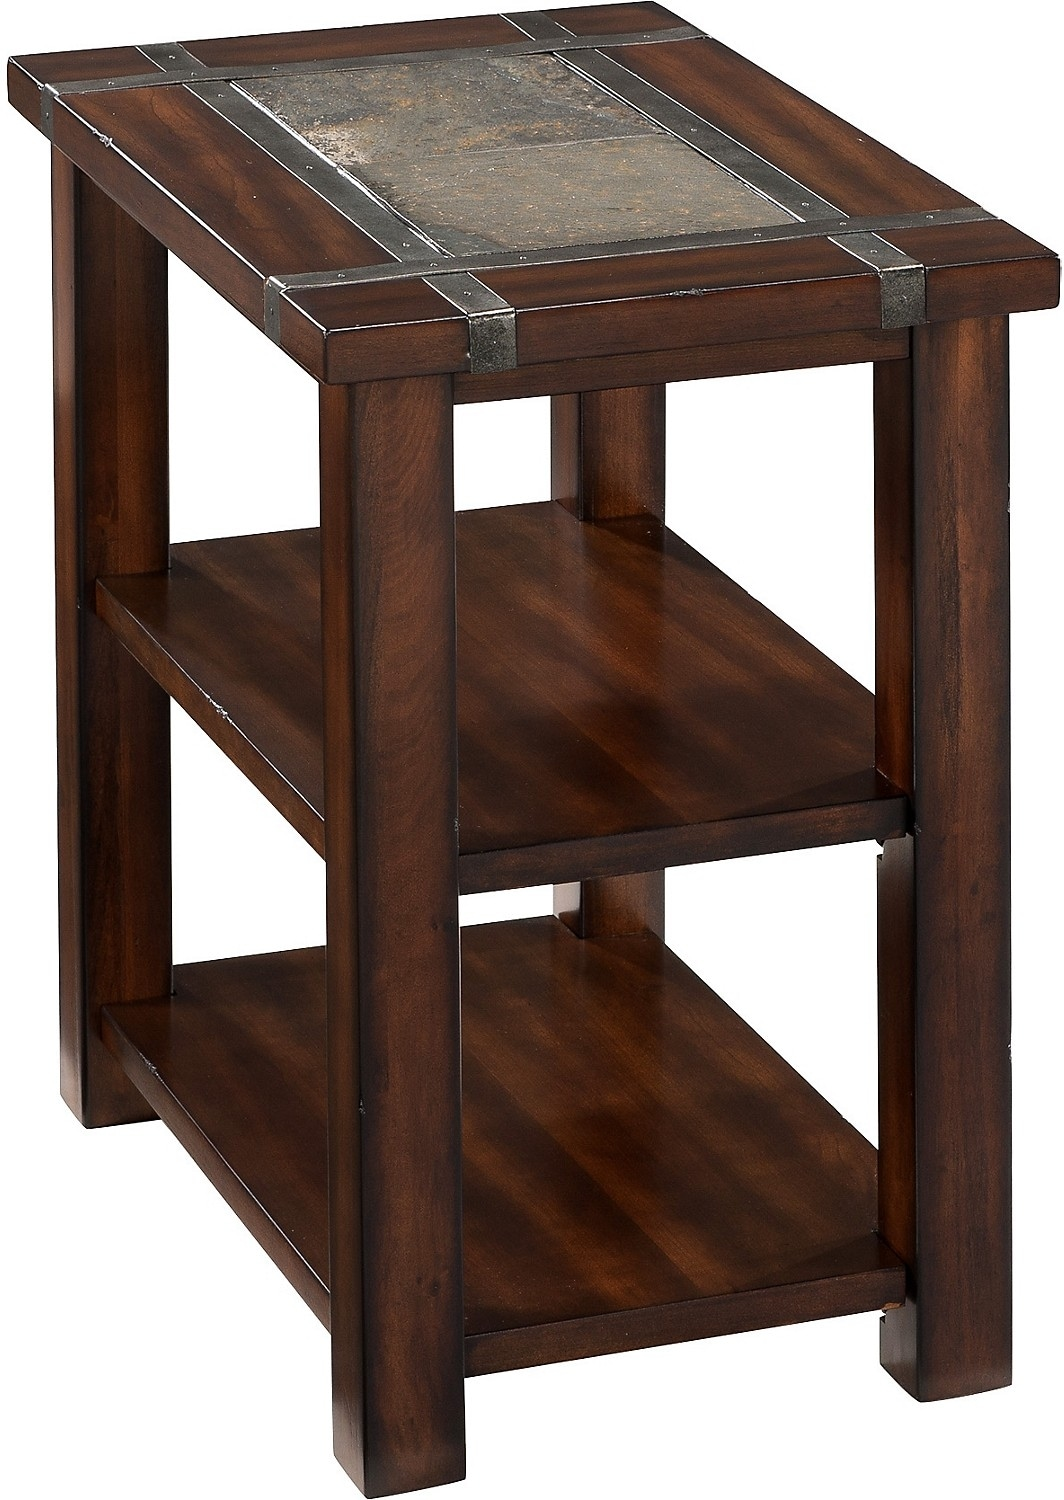 Chair Side Table Roanoke Coffee Table With Lift Top And Casters The Brick